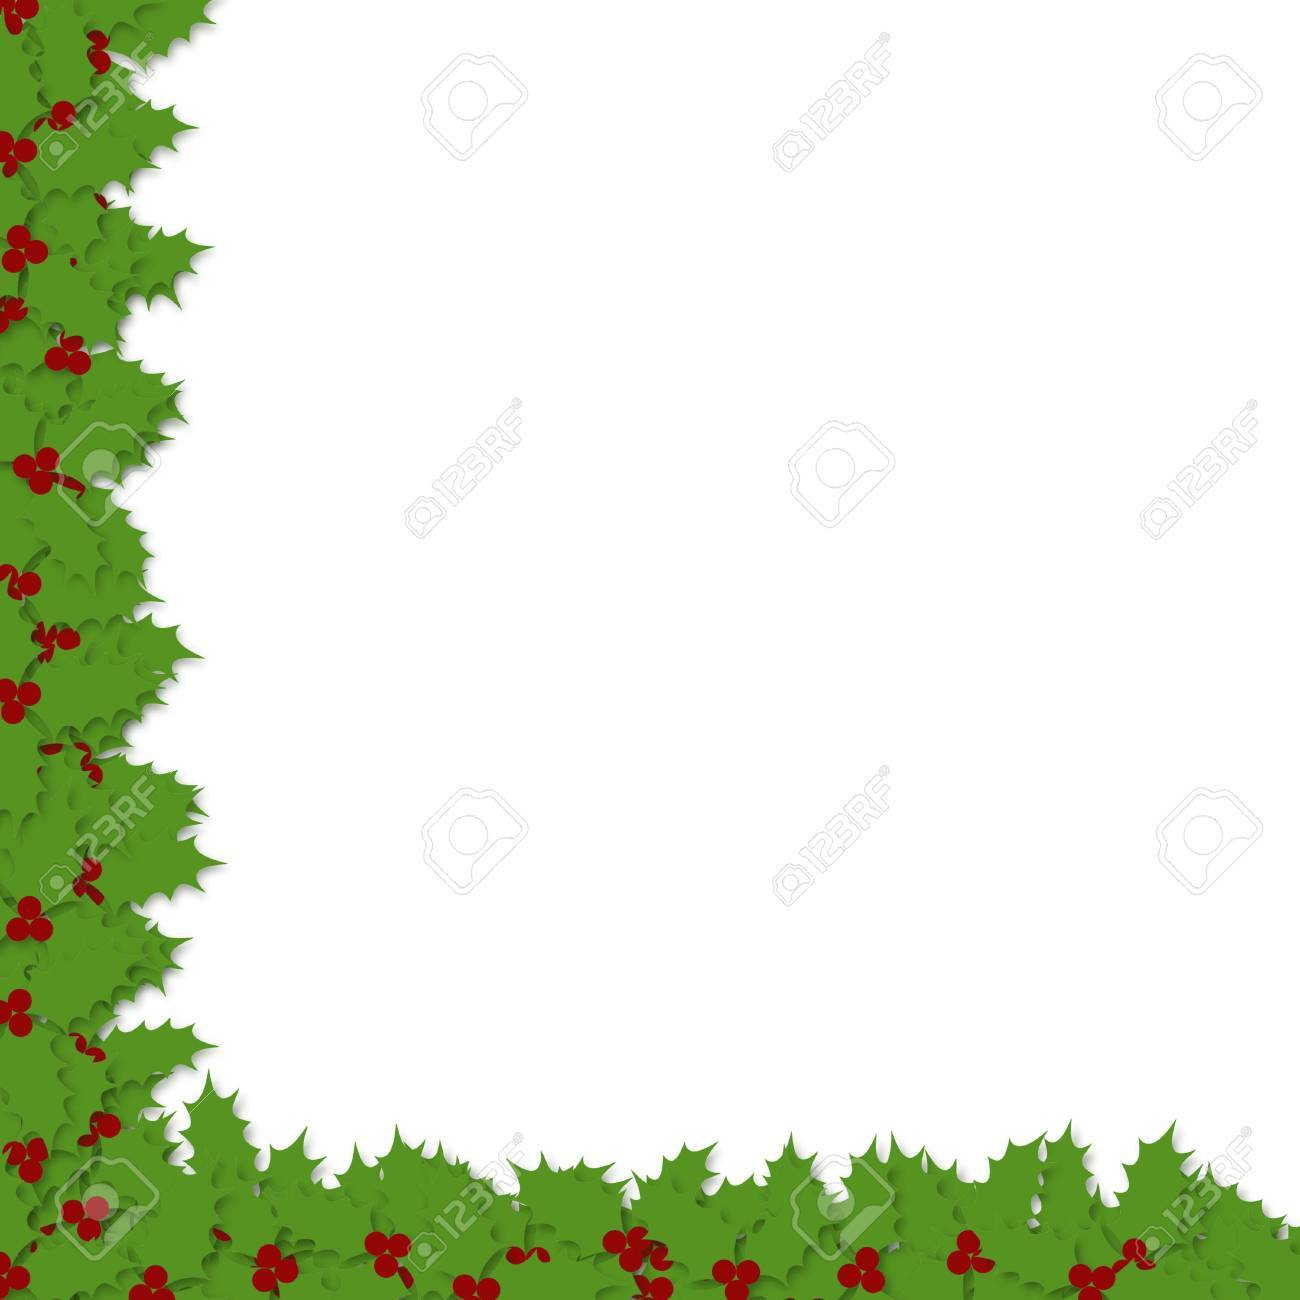 illustration of a decoupage style holly border sweeping down